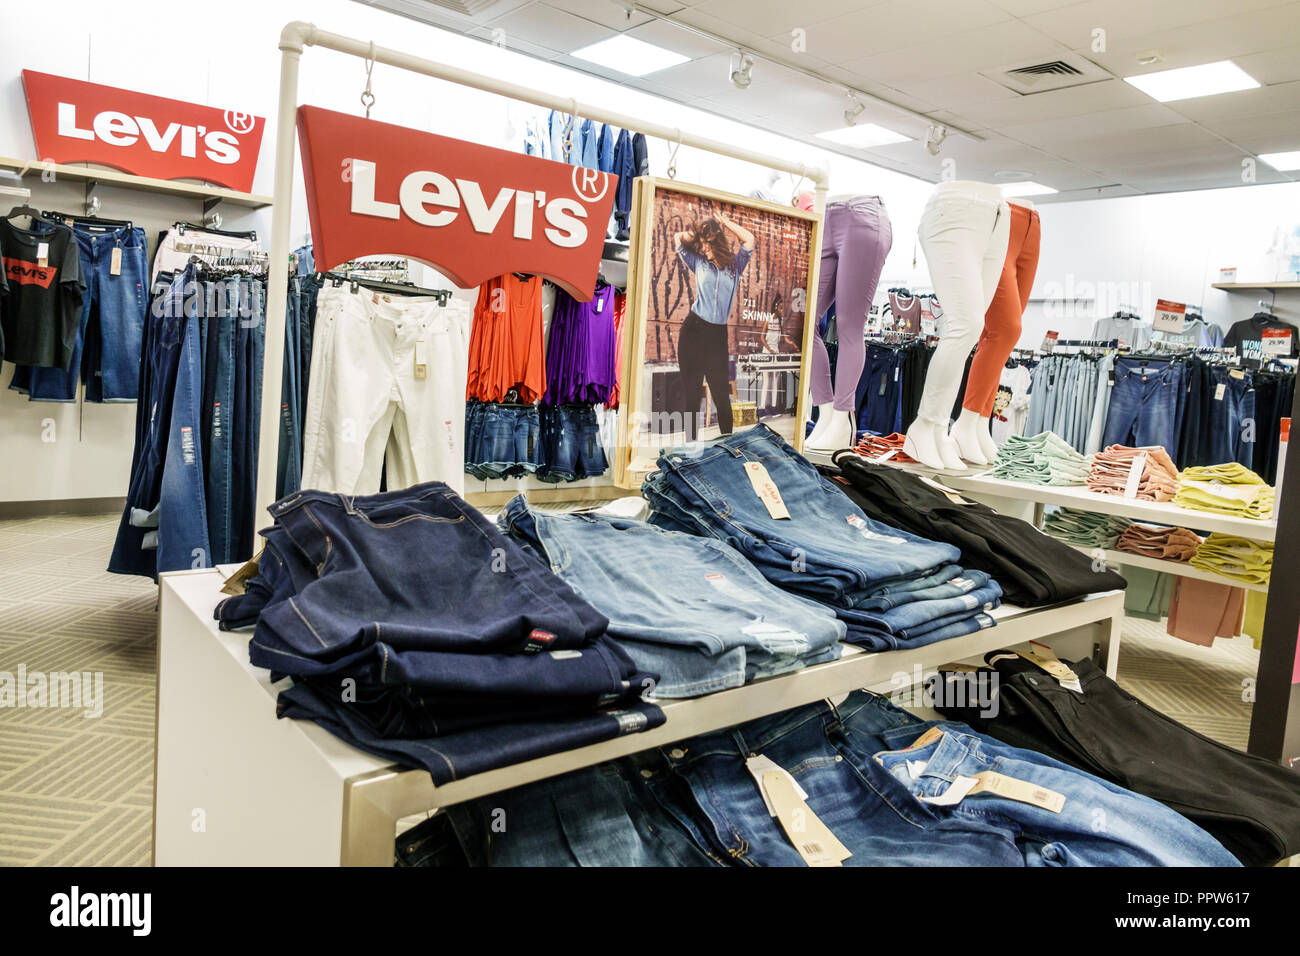 2ba9fc81b Miami Florida Kendall Dadeland Mall shopping Macy s Department Store inside  display sale Levi s denim jeans women s